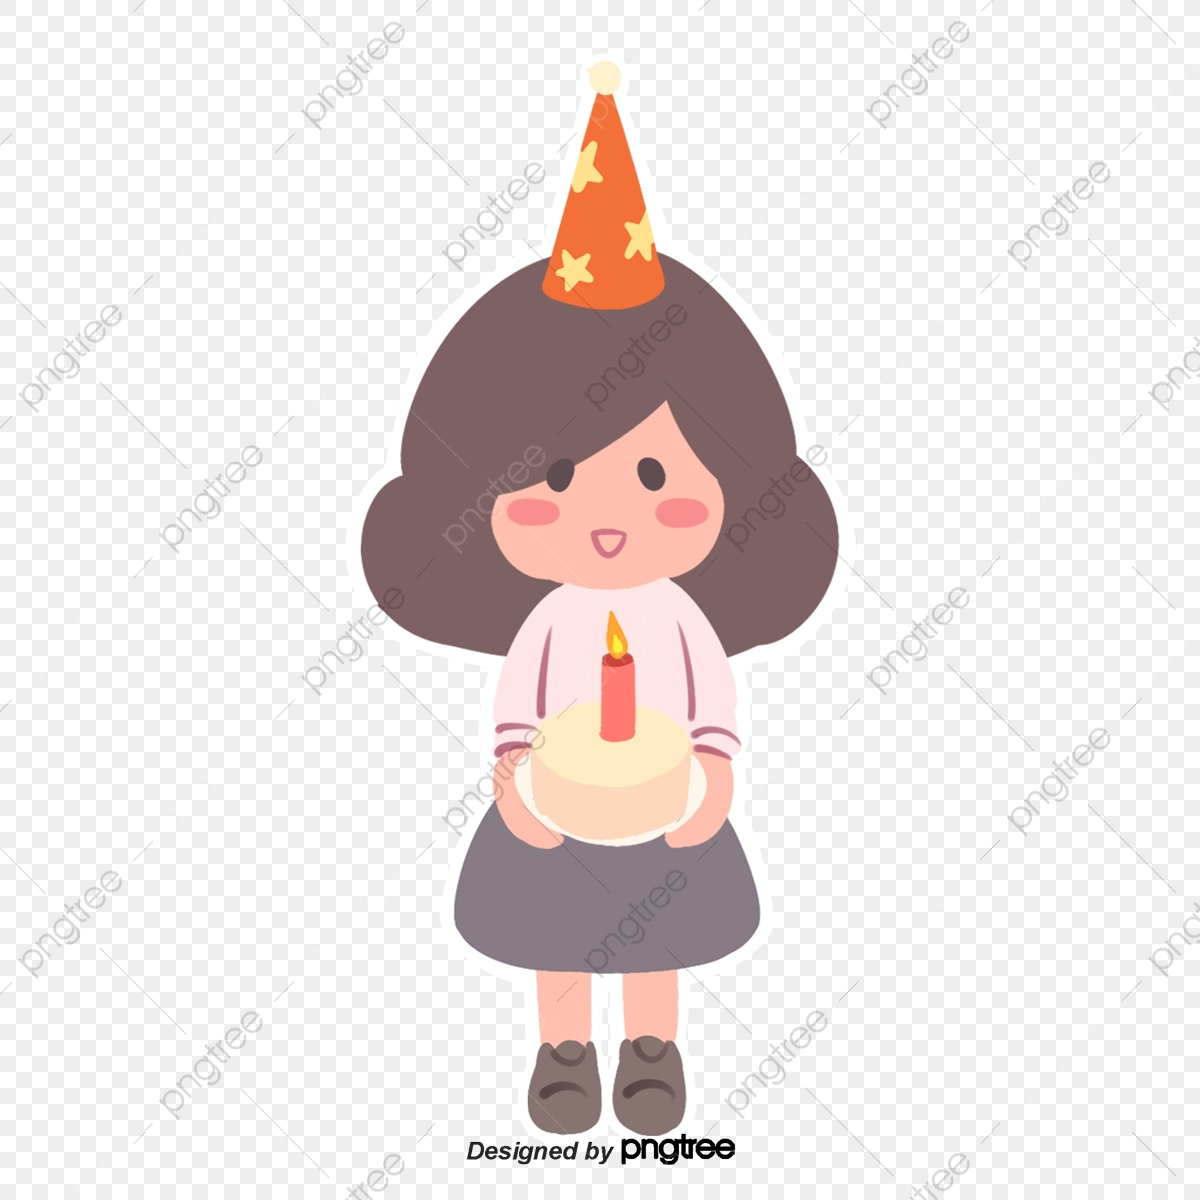 A Little Girl Carrying A Birthday Cake Through Her Birthday Cartoon Girl Celebrating Png Transparent Clipart Image And Psd File For Free Download